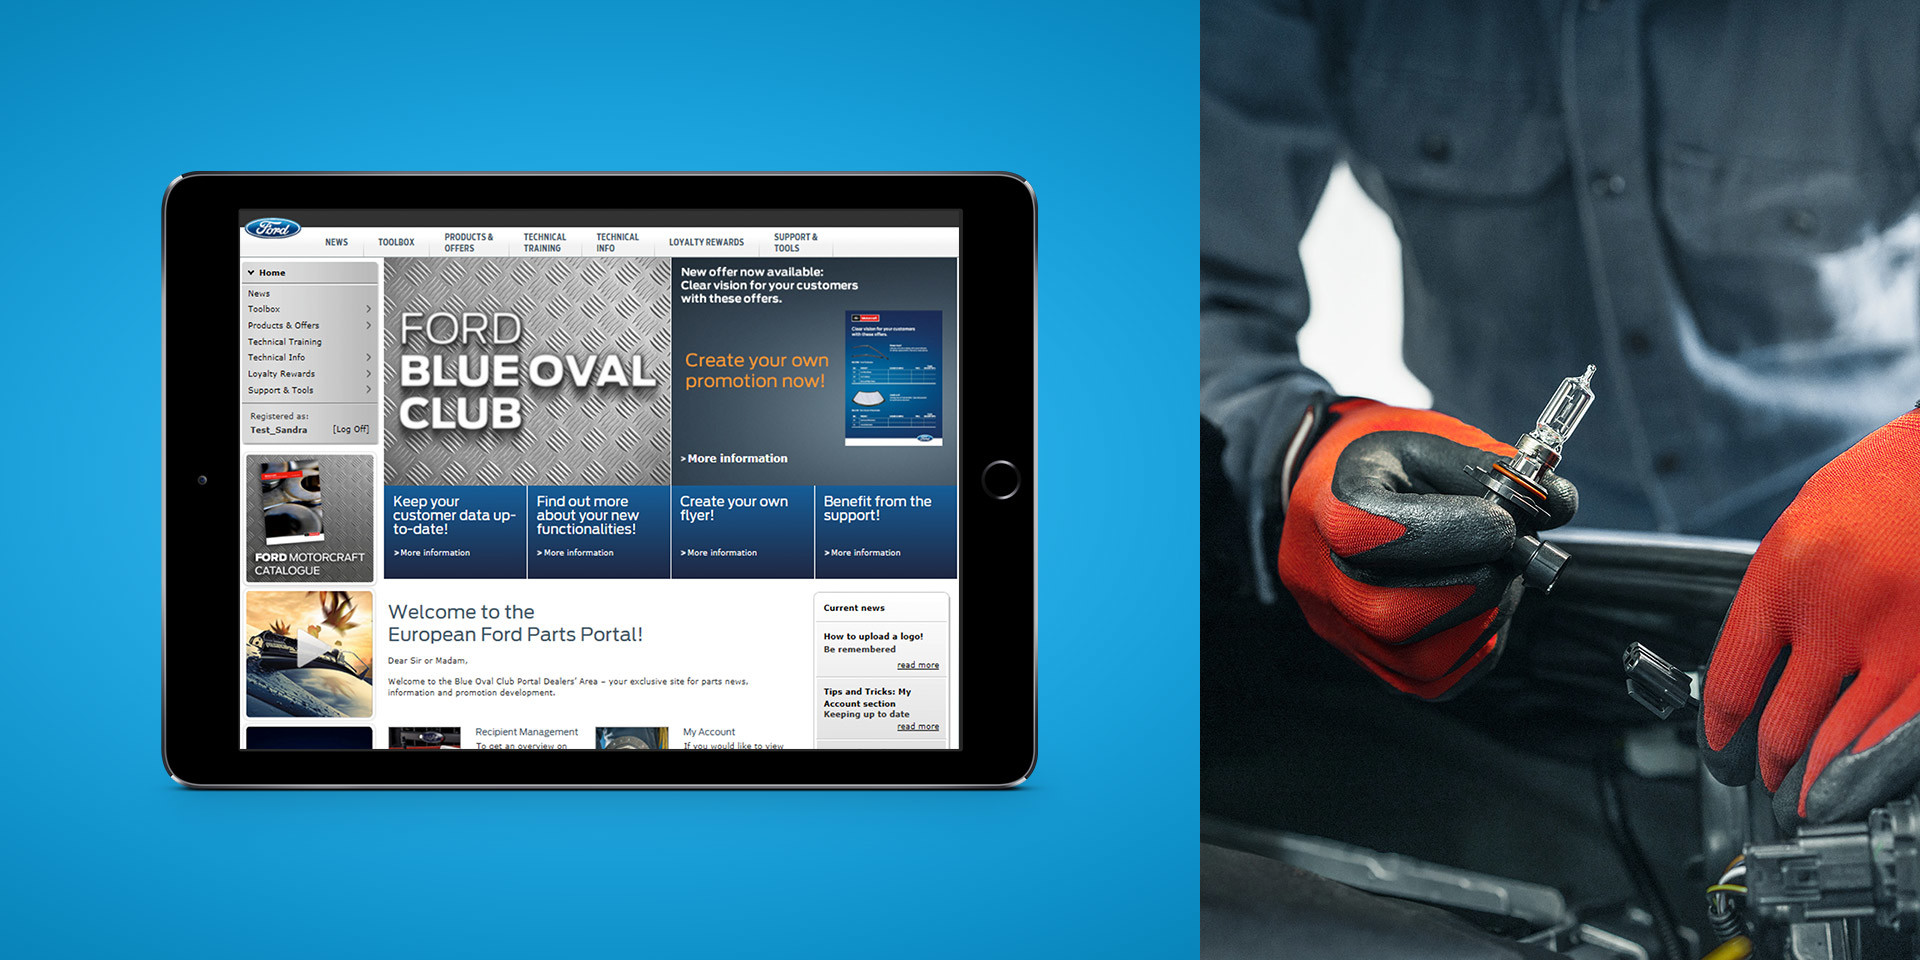 Ford Europe – European Parts Portal – Tablet